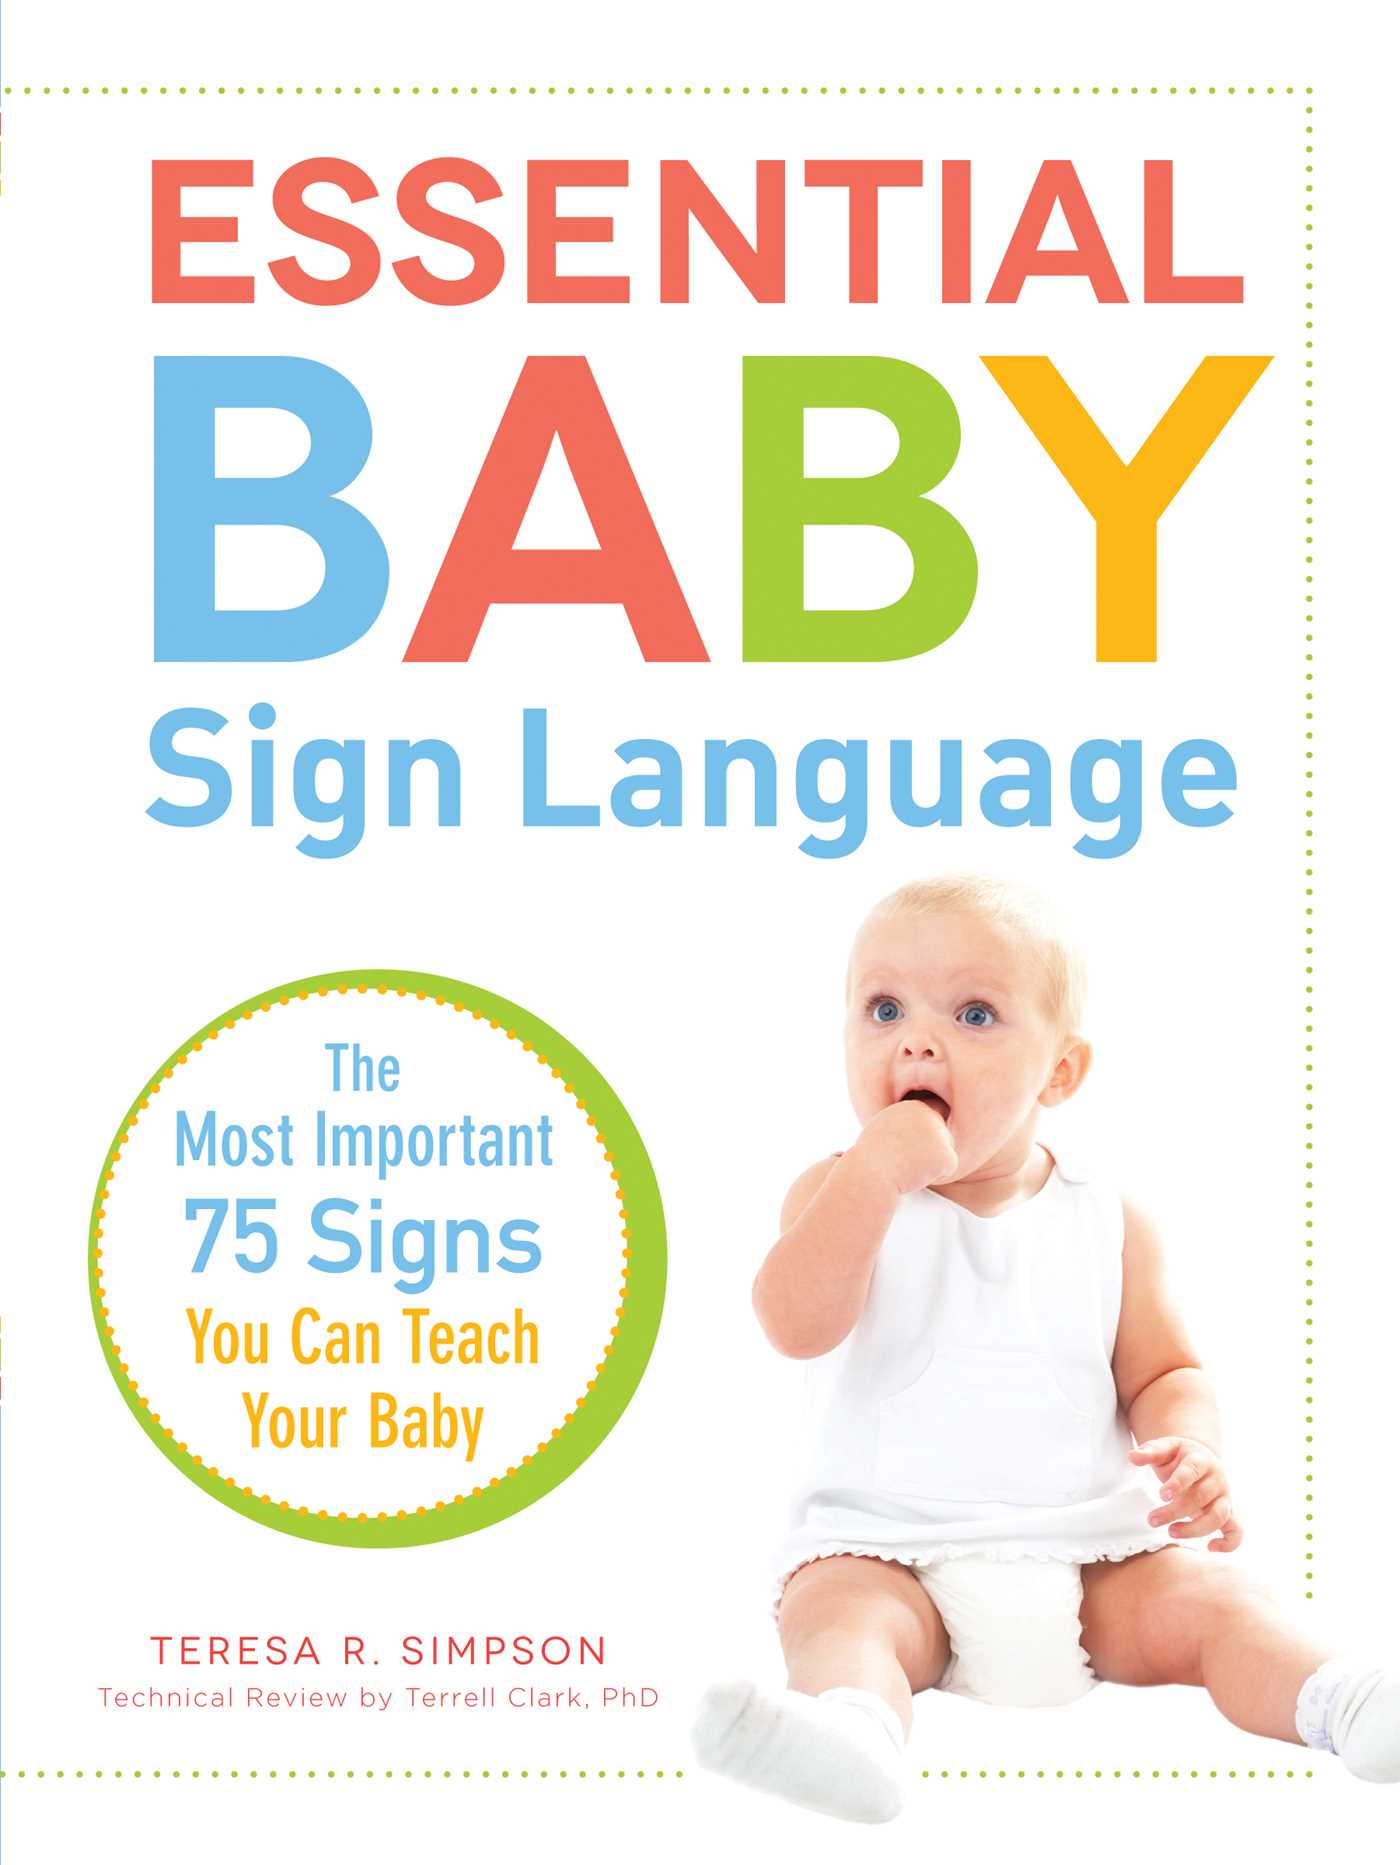 baby sign language Baby sign language is the use of manual signing allowing infants and toddlers to communicate emotions, desires, and objects prior to spoken language development .